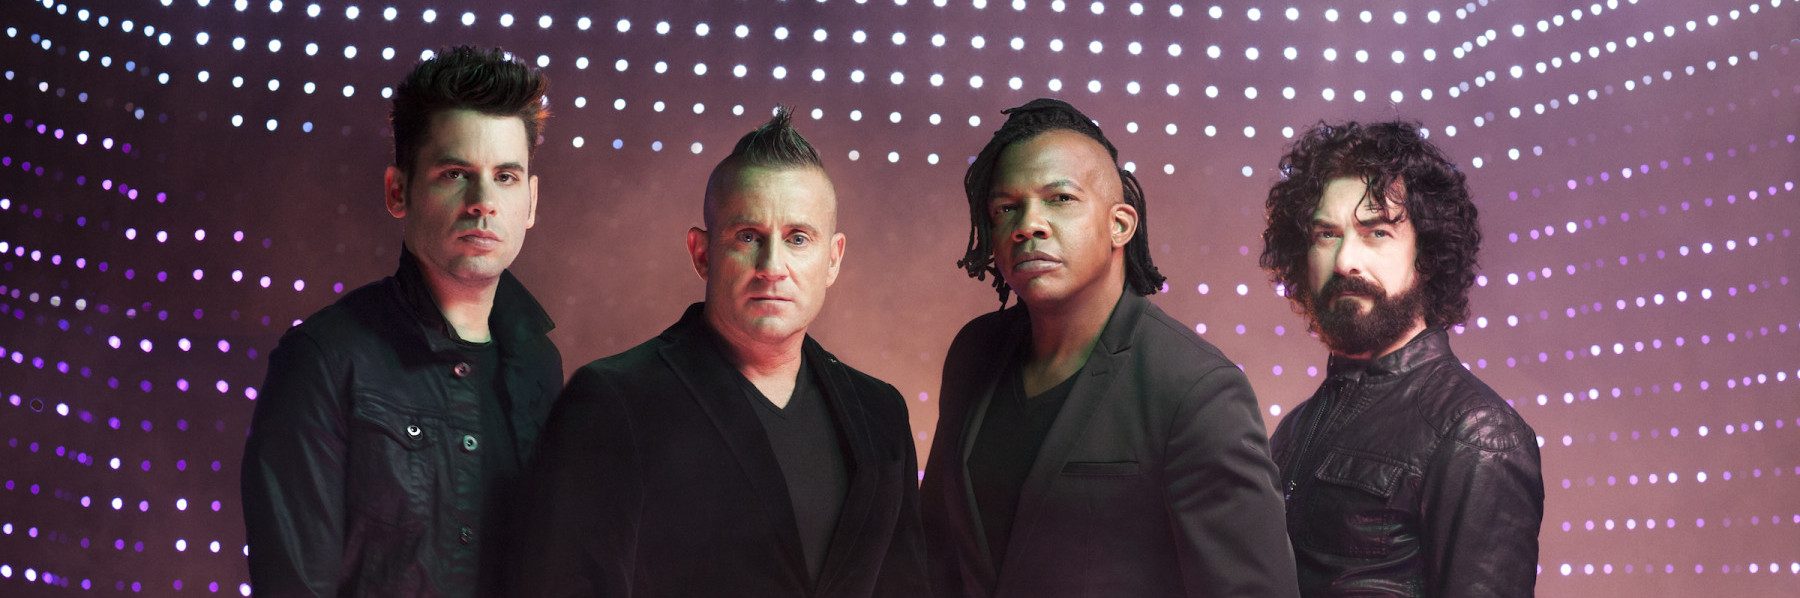 NEWSBOYS ANNOUNCE 'LOVE RIOT' TOUR